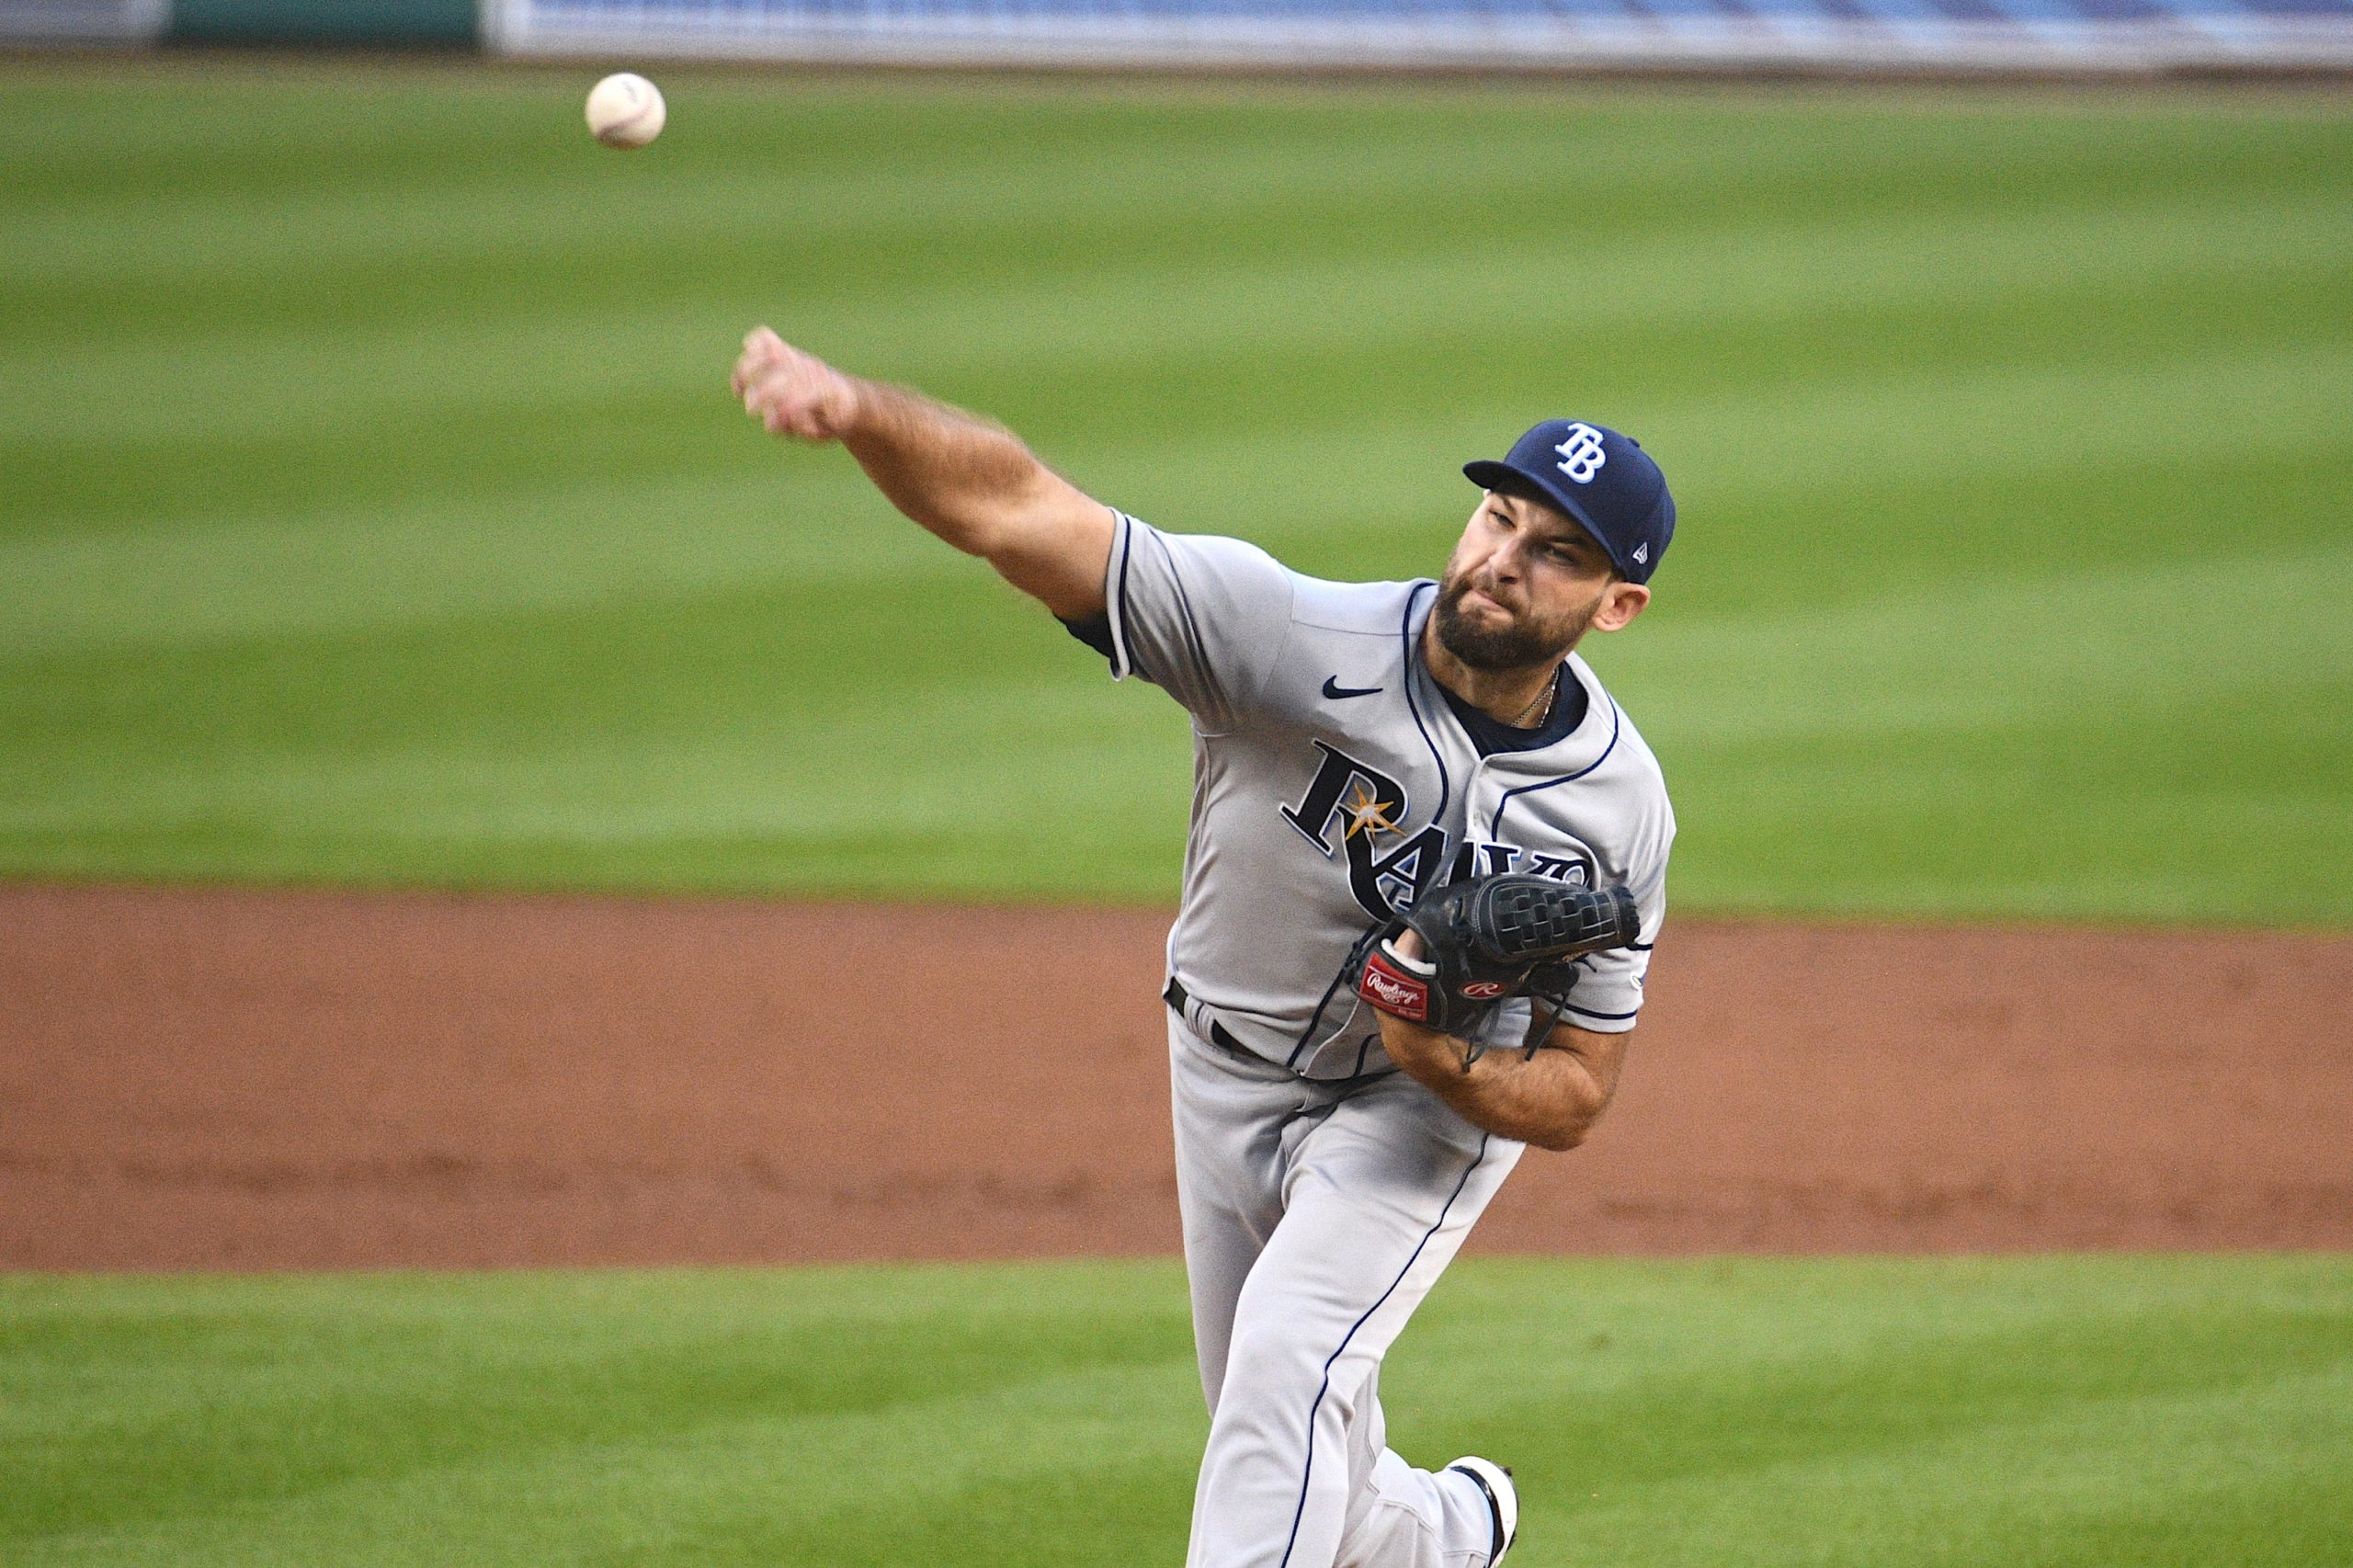 Rays Back Home After Disappointing Road Trip